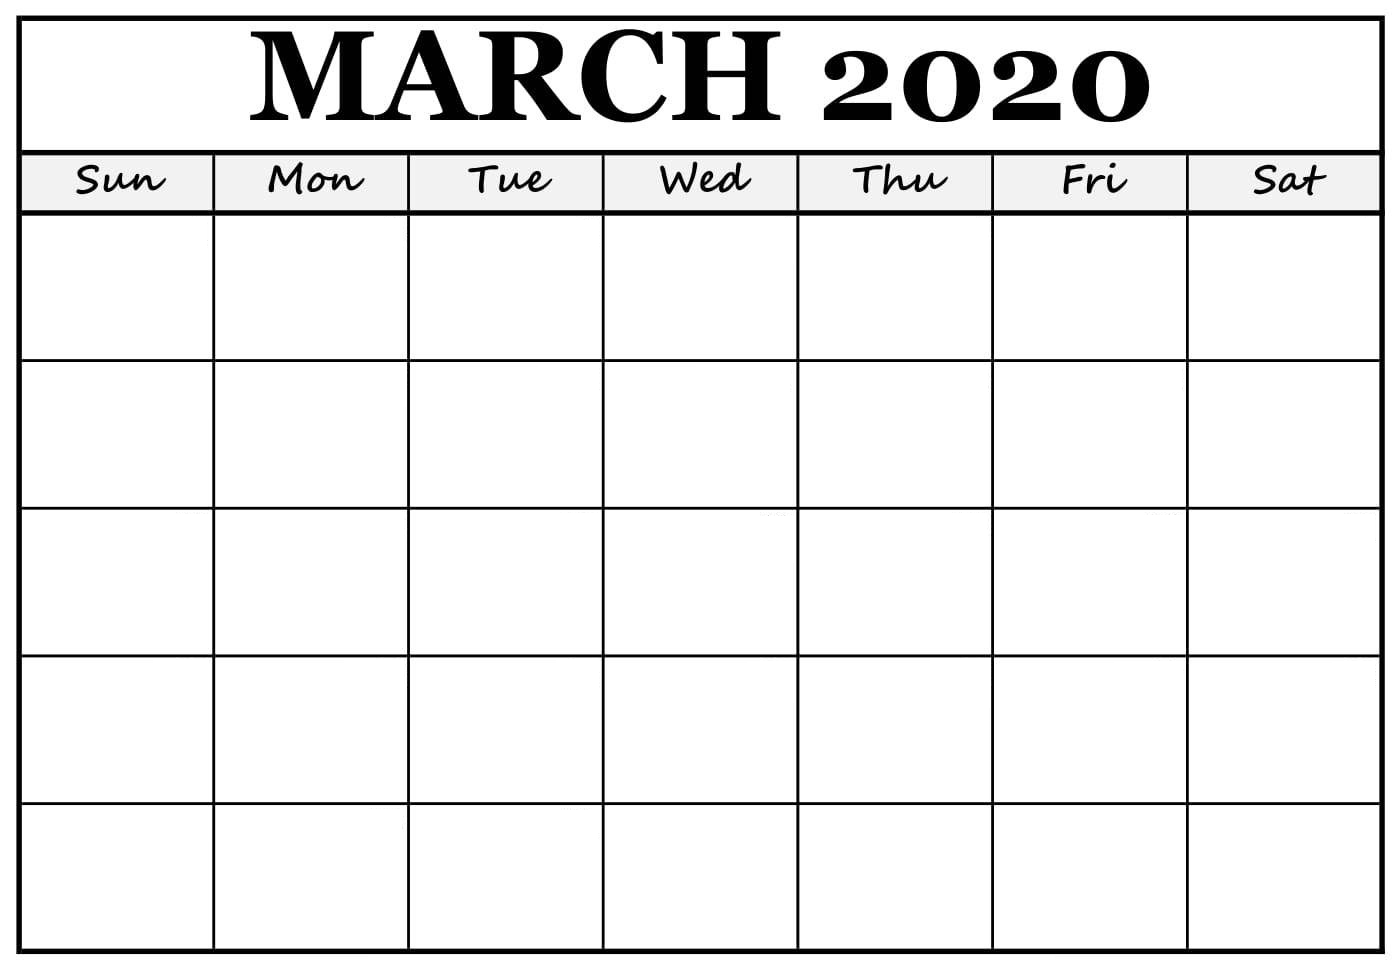 Blank March 2020 Calendar With Holidays